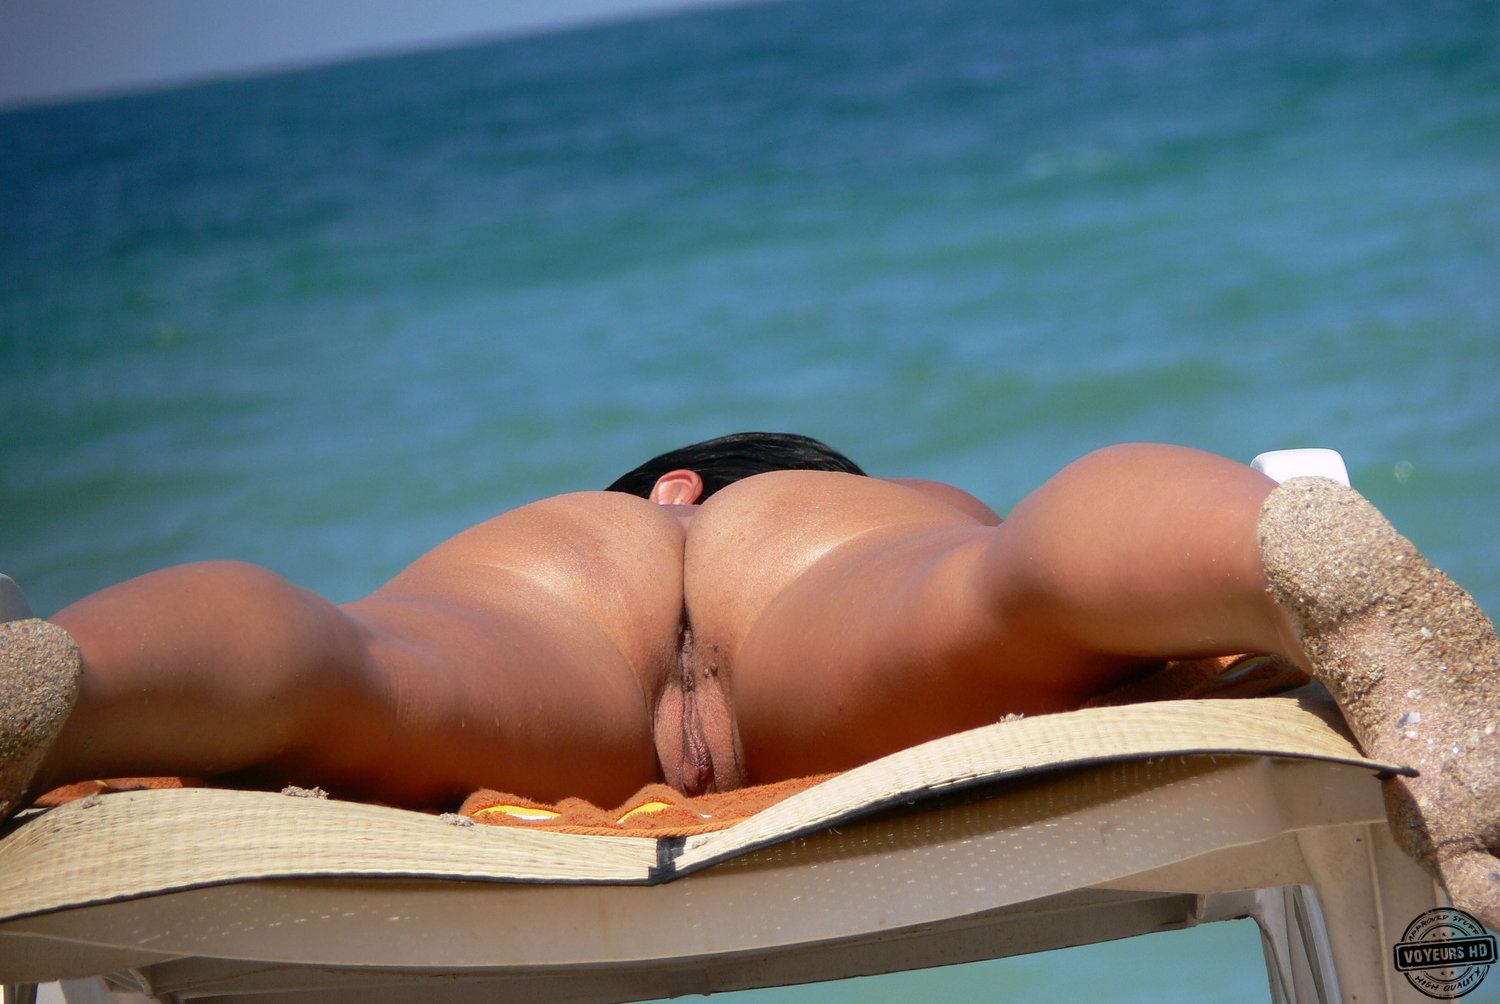 Nude beach voyeur tgp something is